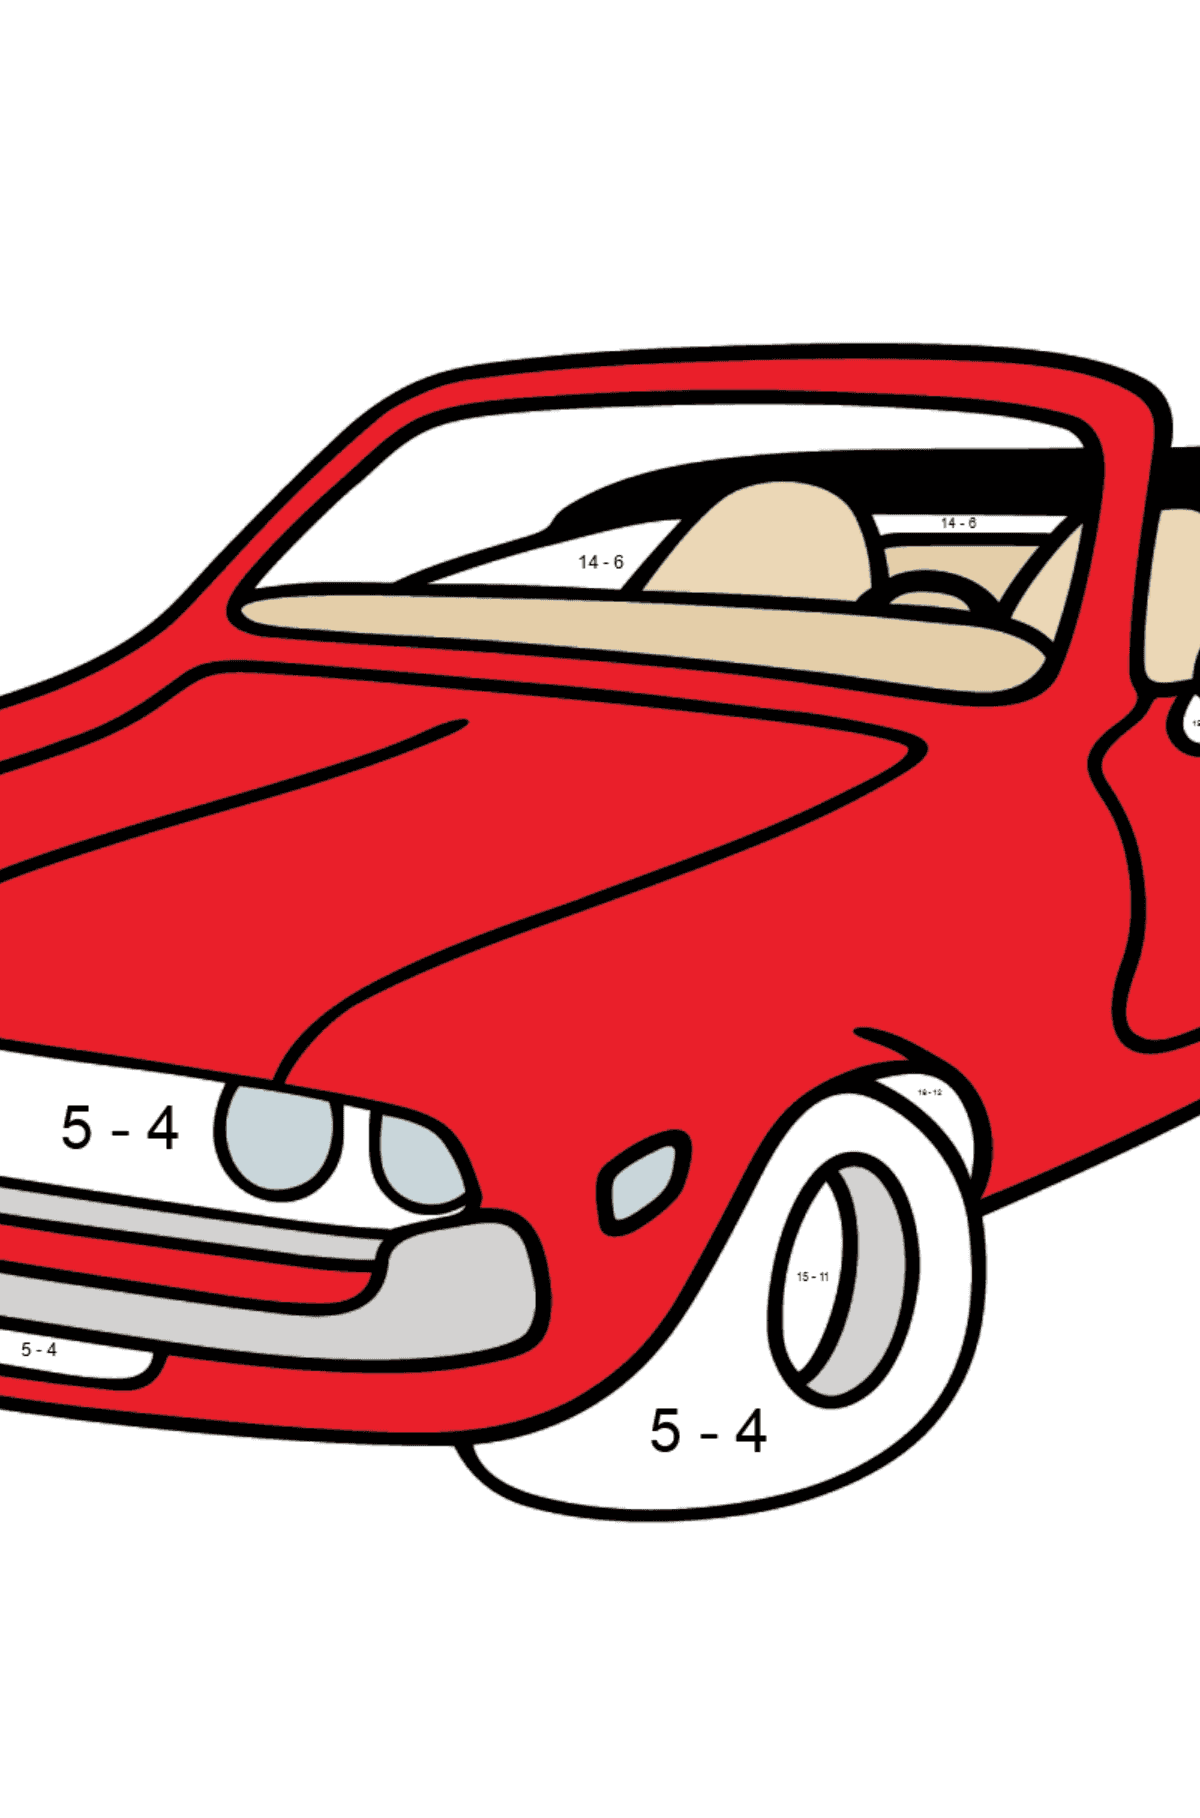 Open Top Cars coloring page - Math Coloring - Subtraction for Kids